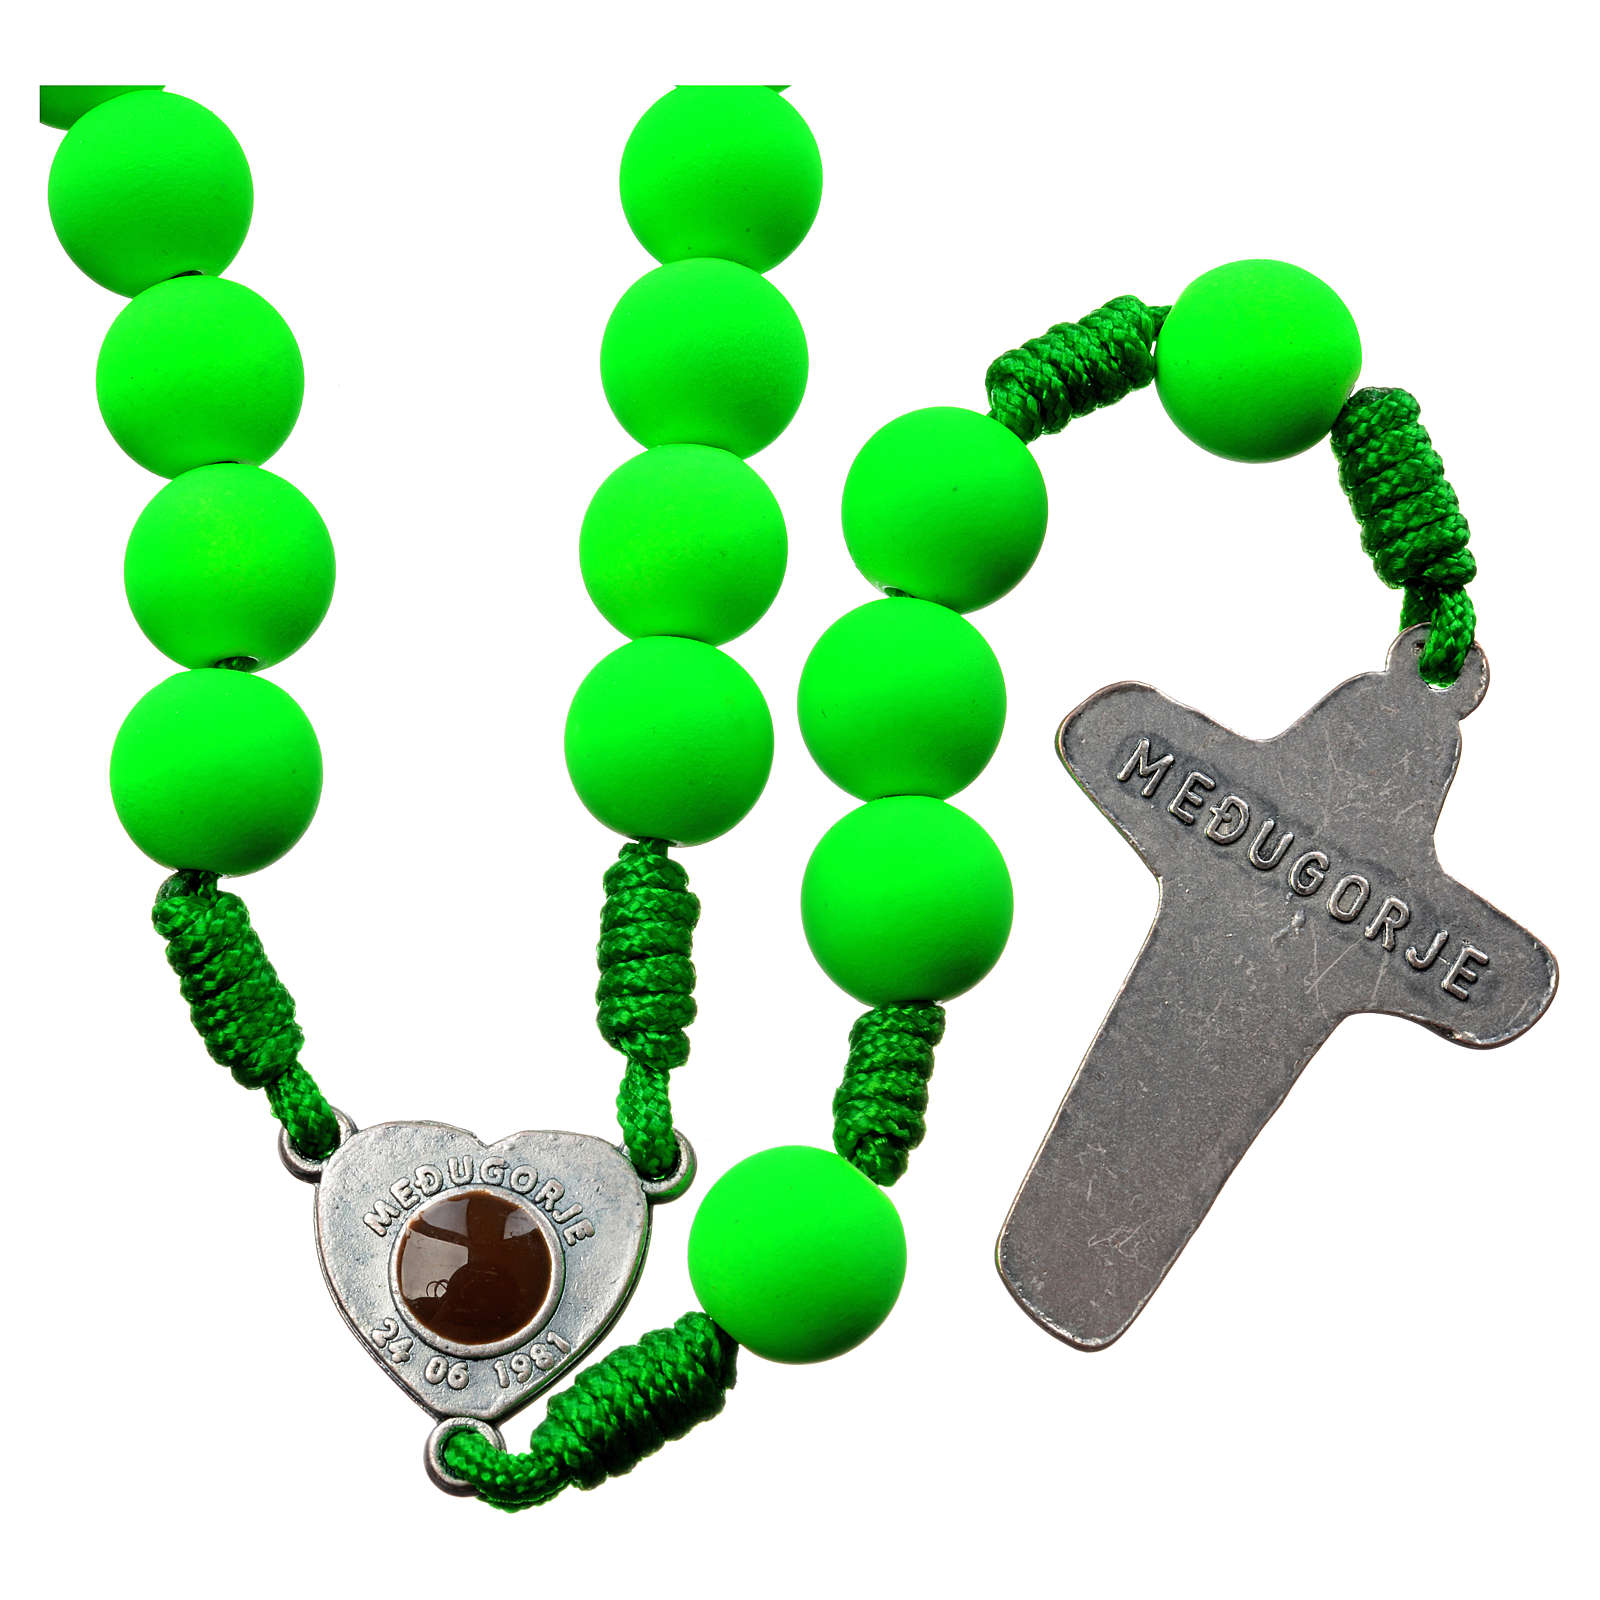 Medjugorje rosary in green fimo with Medjugorje soil 4